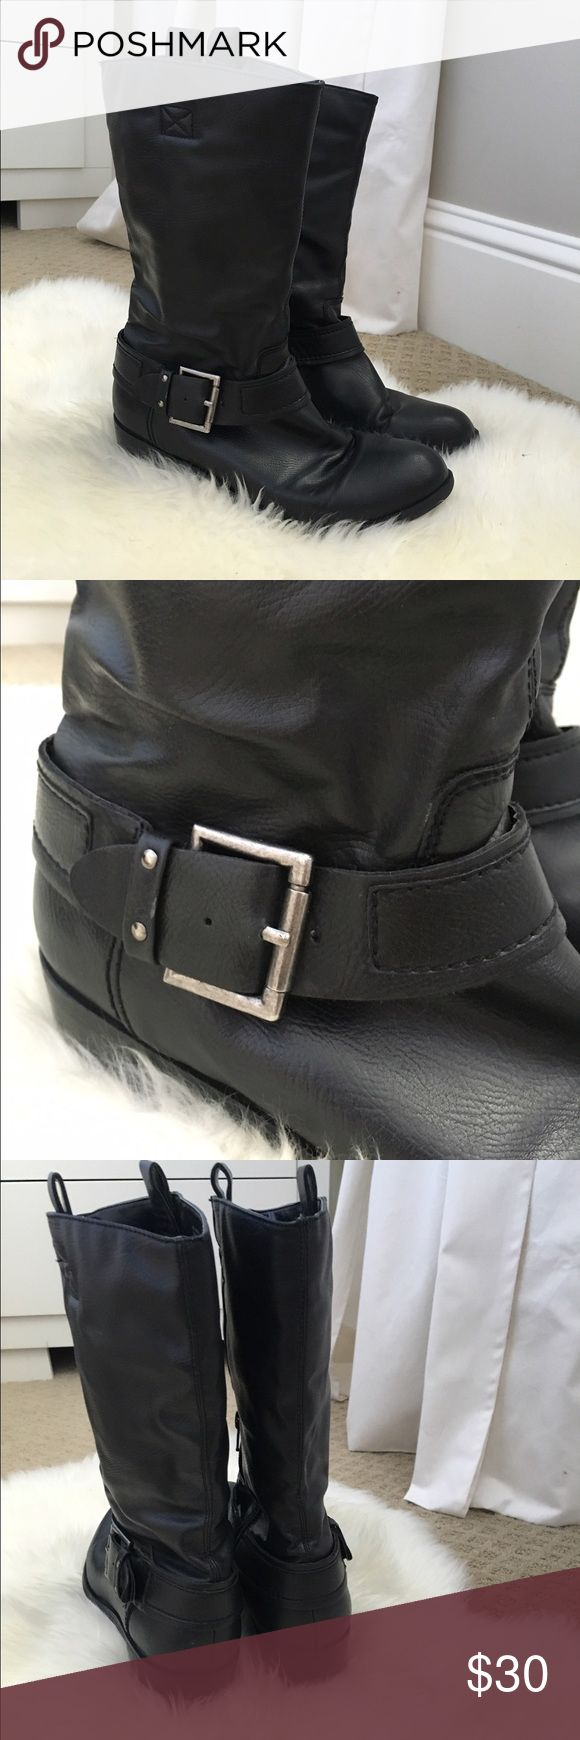 Black Moto Boots Vegan leather Style & Co Moto boots. No visible signs of wear, worn only a few times. Rubber sole and side zippers on the interior of the leg. Style & Co Shoes Combat & Moto Boots